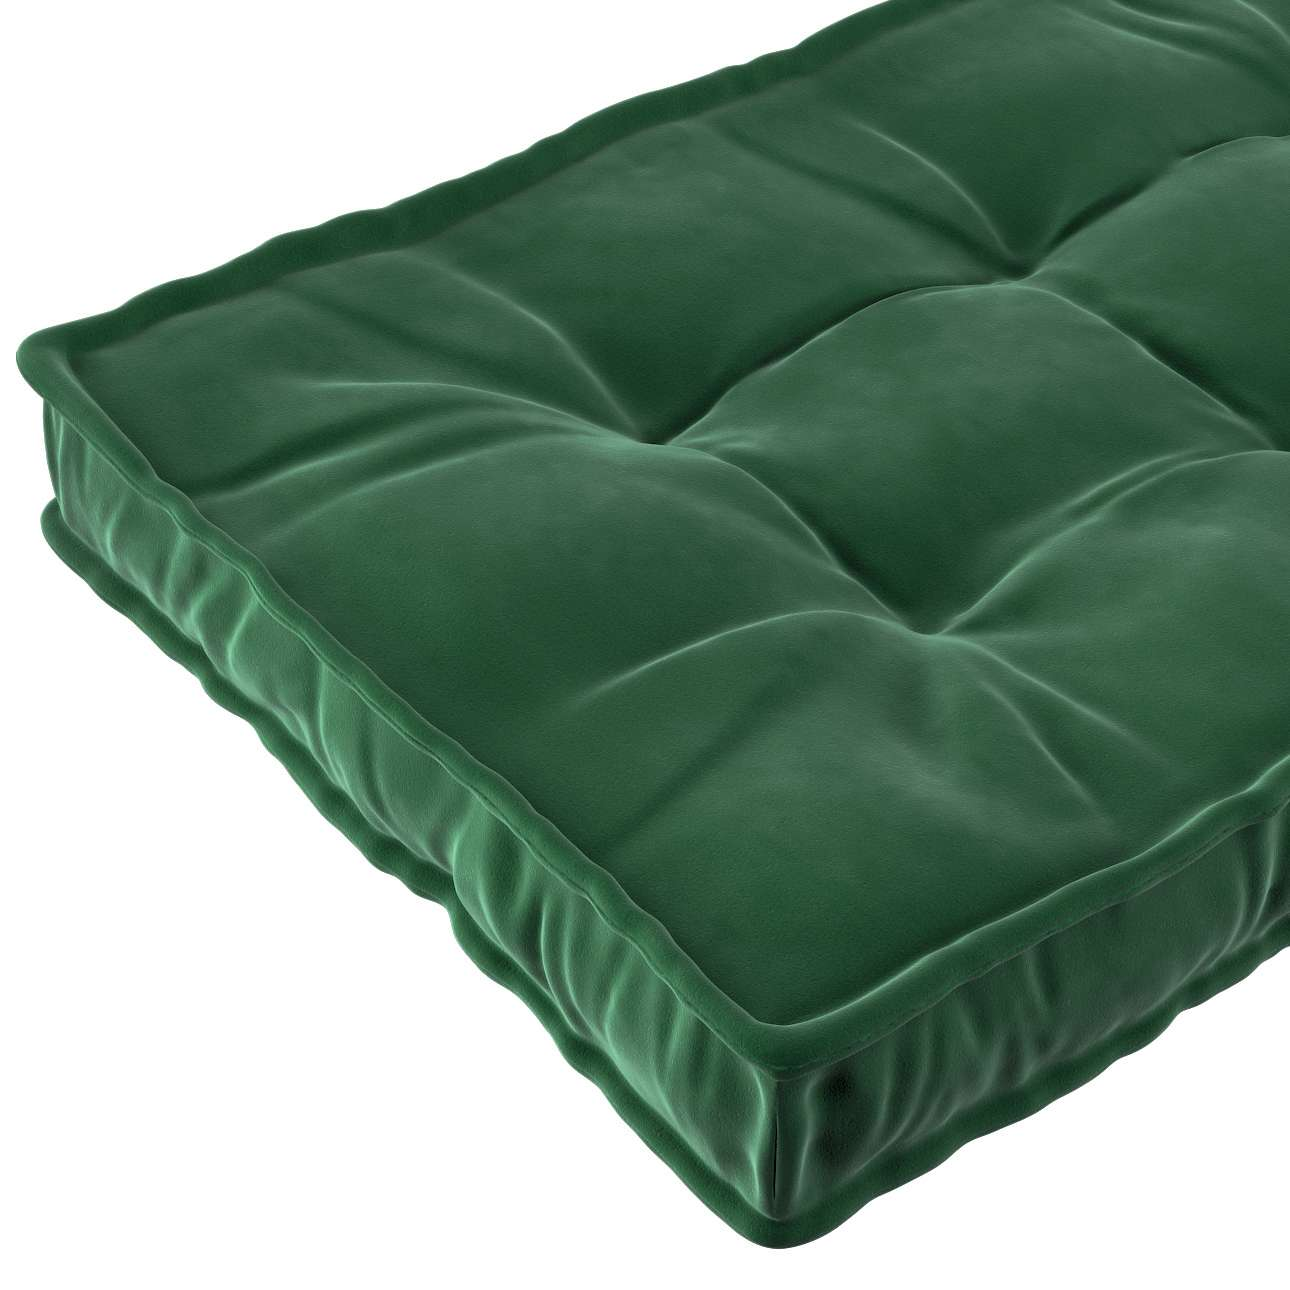 French mattress in collection Posh Velvet, fabric: 704-13